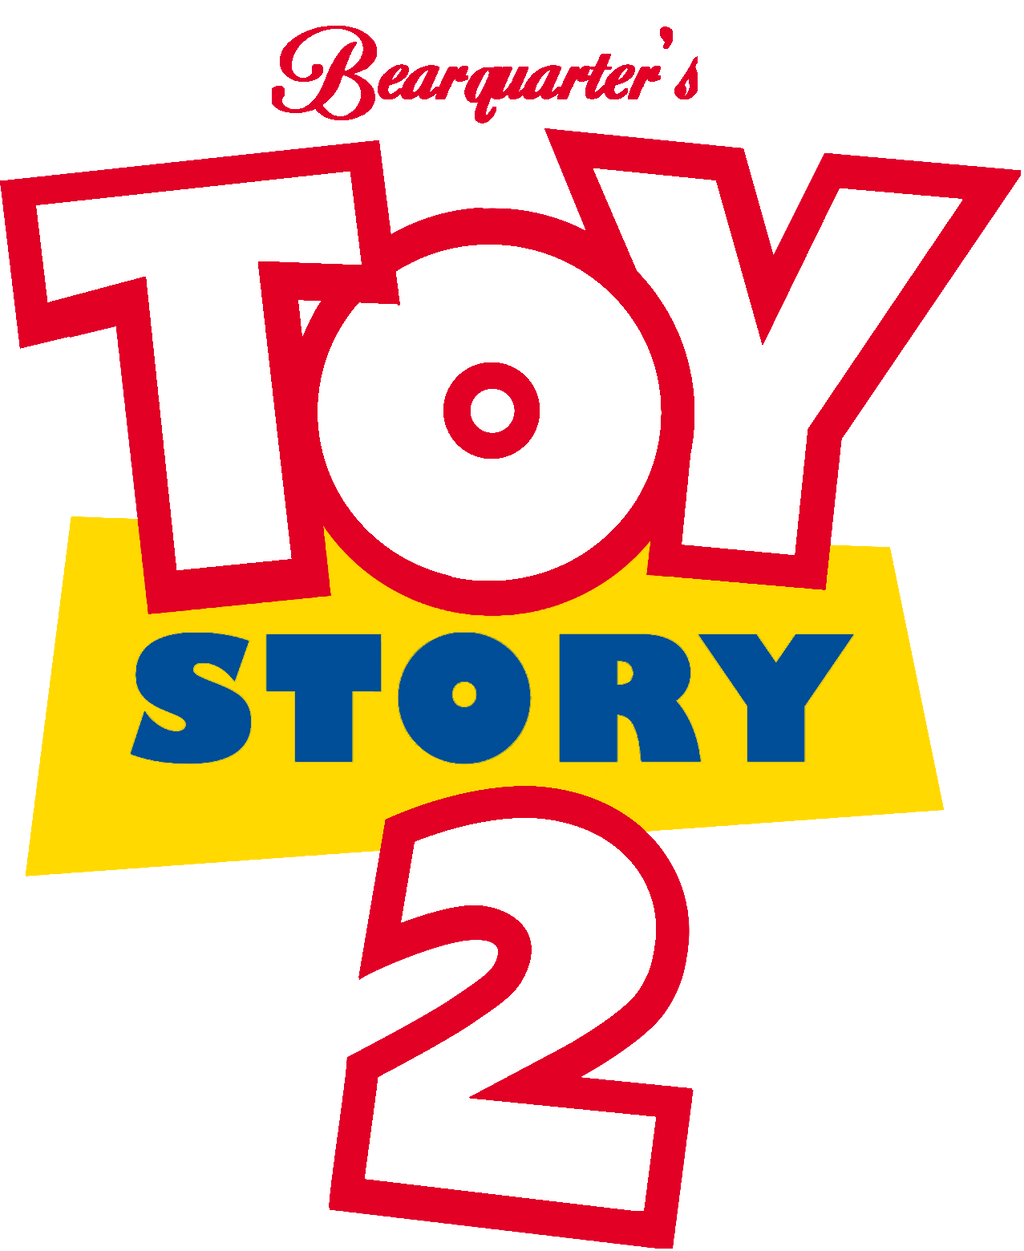 Bearquarter S Toy Story 2 Act 1 By Bearquarter2008 On Deviantart